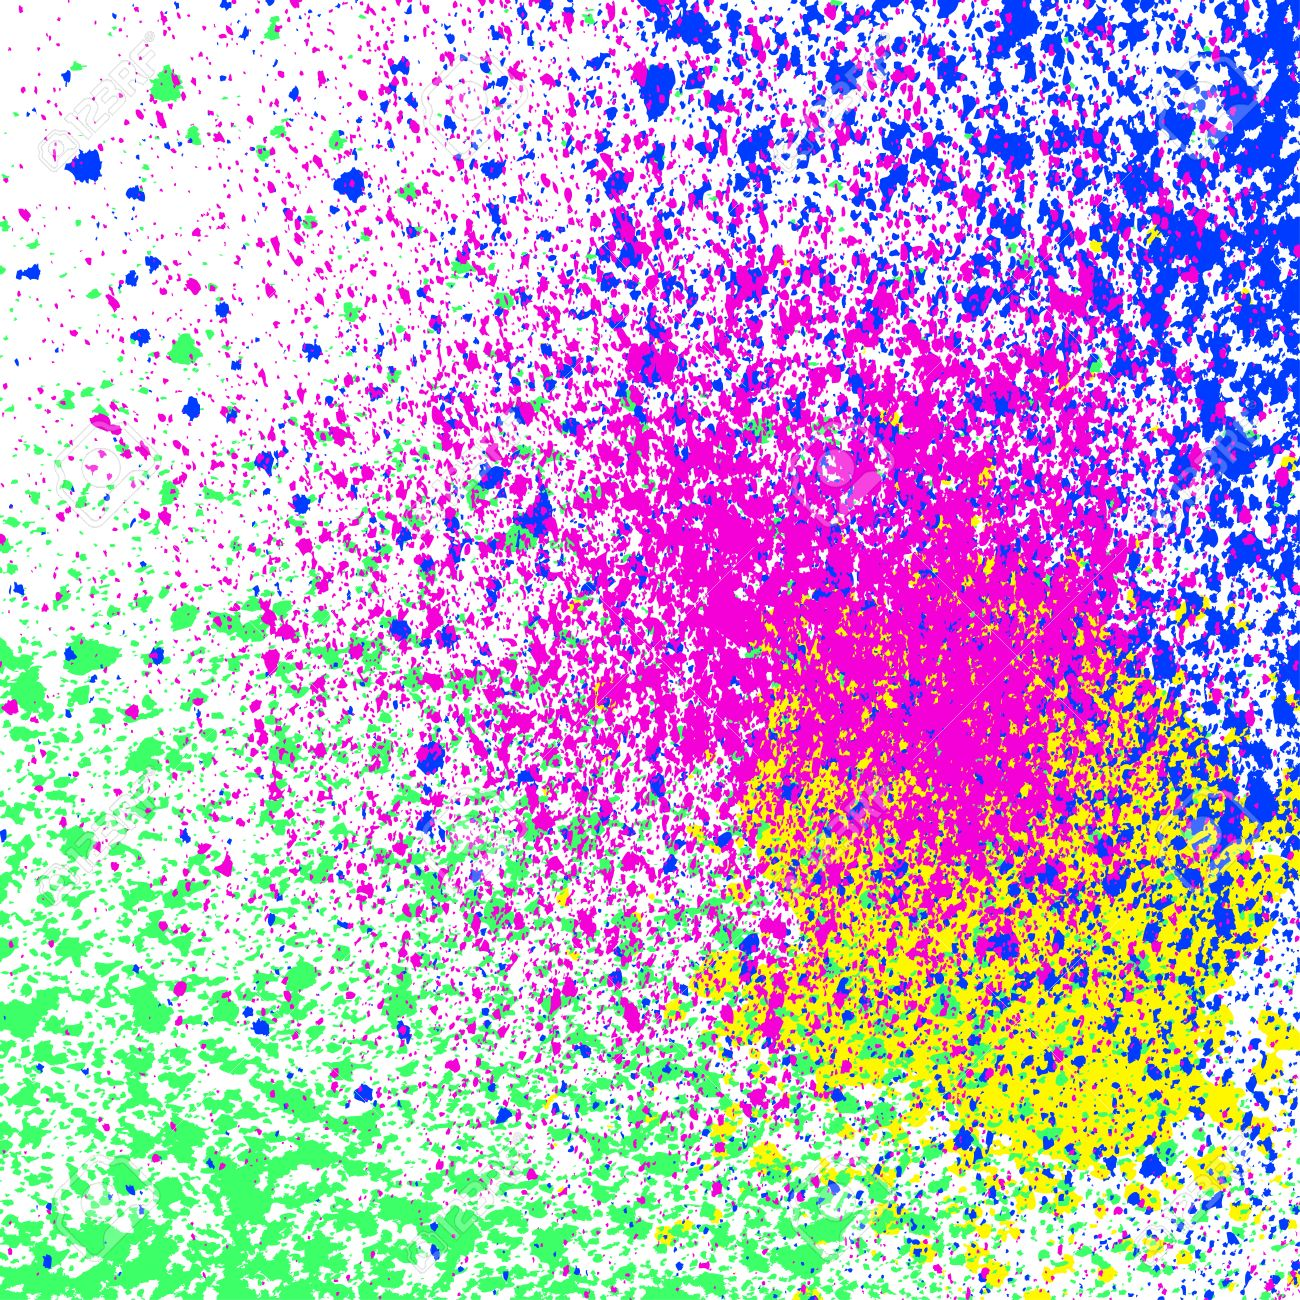 Colorful Acrylic Paint Splatter, Blob On White Background. Neon ...